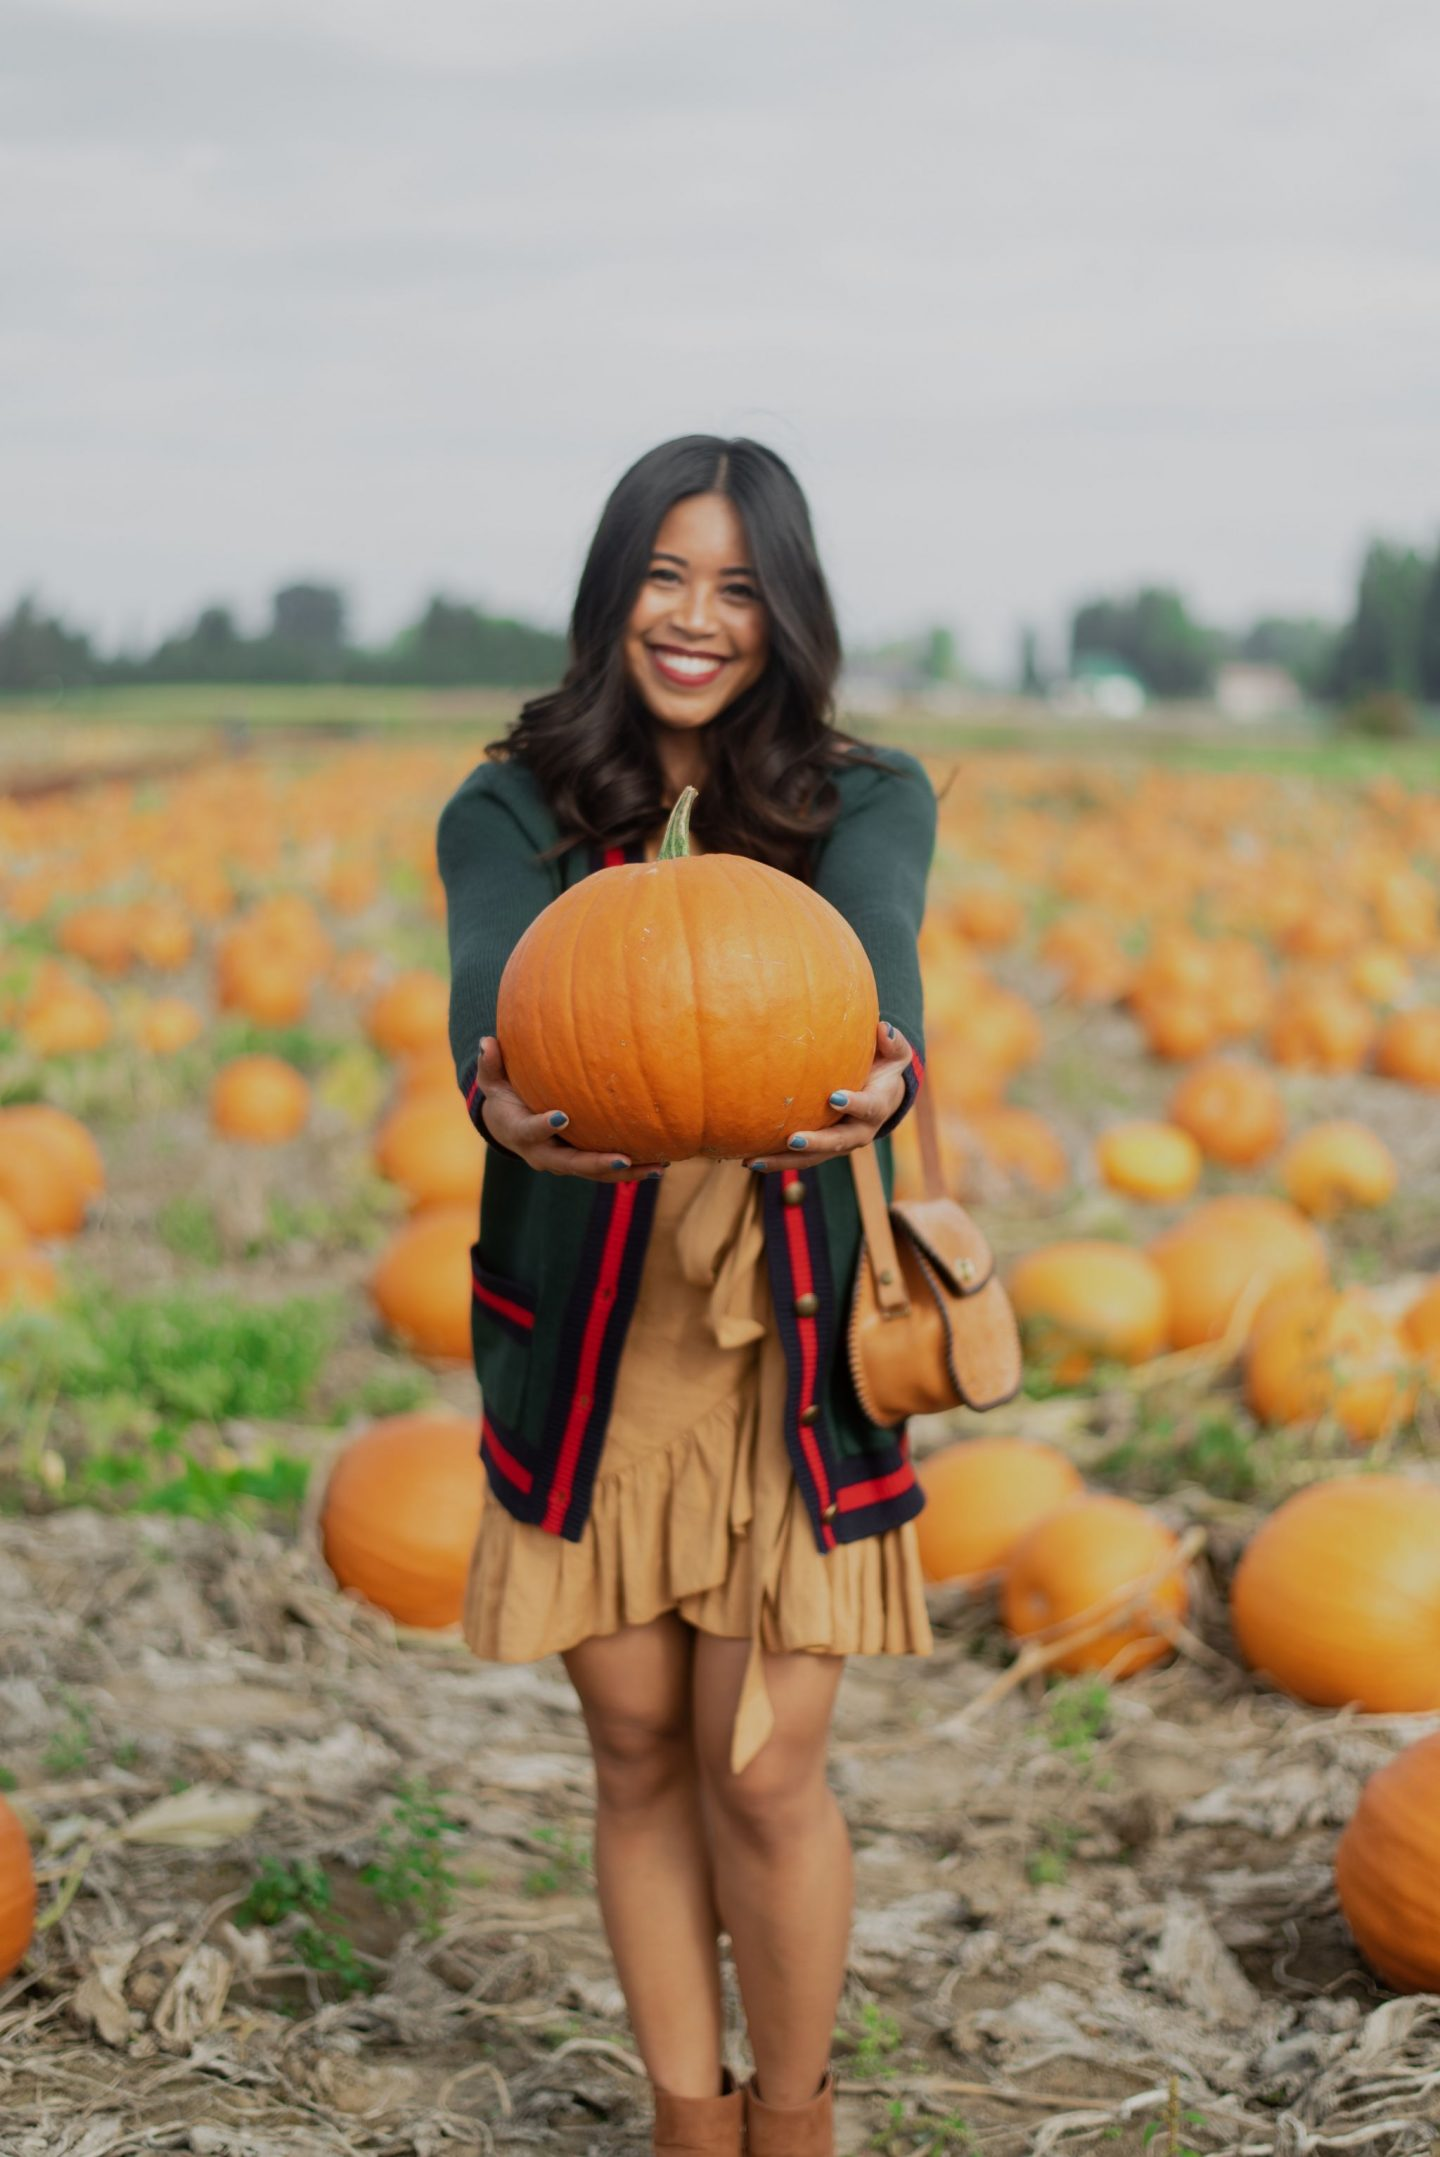 Pumpkin patch outfit ideas – pumpkin patch outfits – pumpkin patch clothing – cutest pumpkin in the patch outfit – fall outfits 2018 –fall outfits inspo – what to wear this fall – cute fall outfits 2018 – fall outfit ideas 2018 – autumn outfit ideas – fall fashion trends 2018